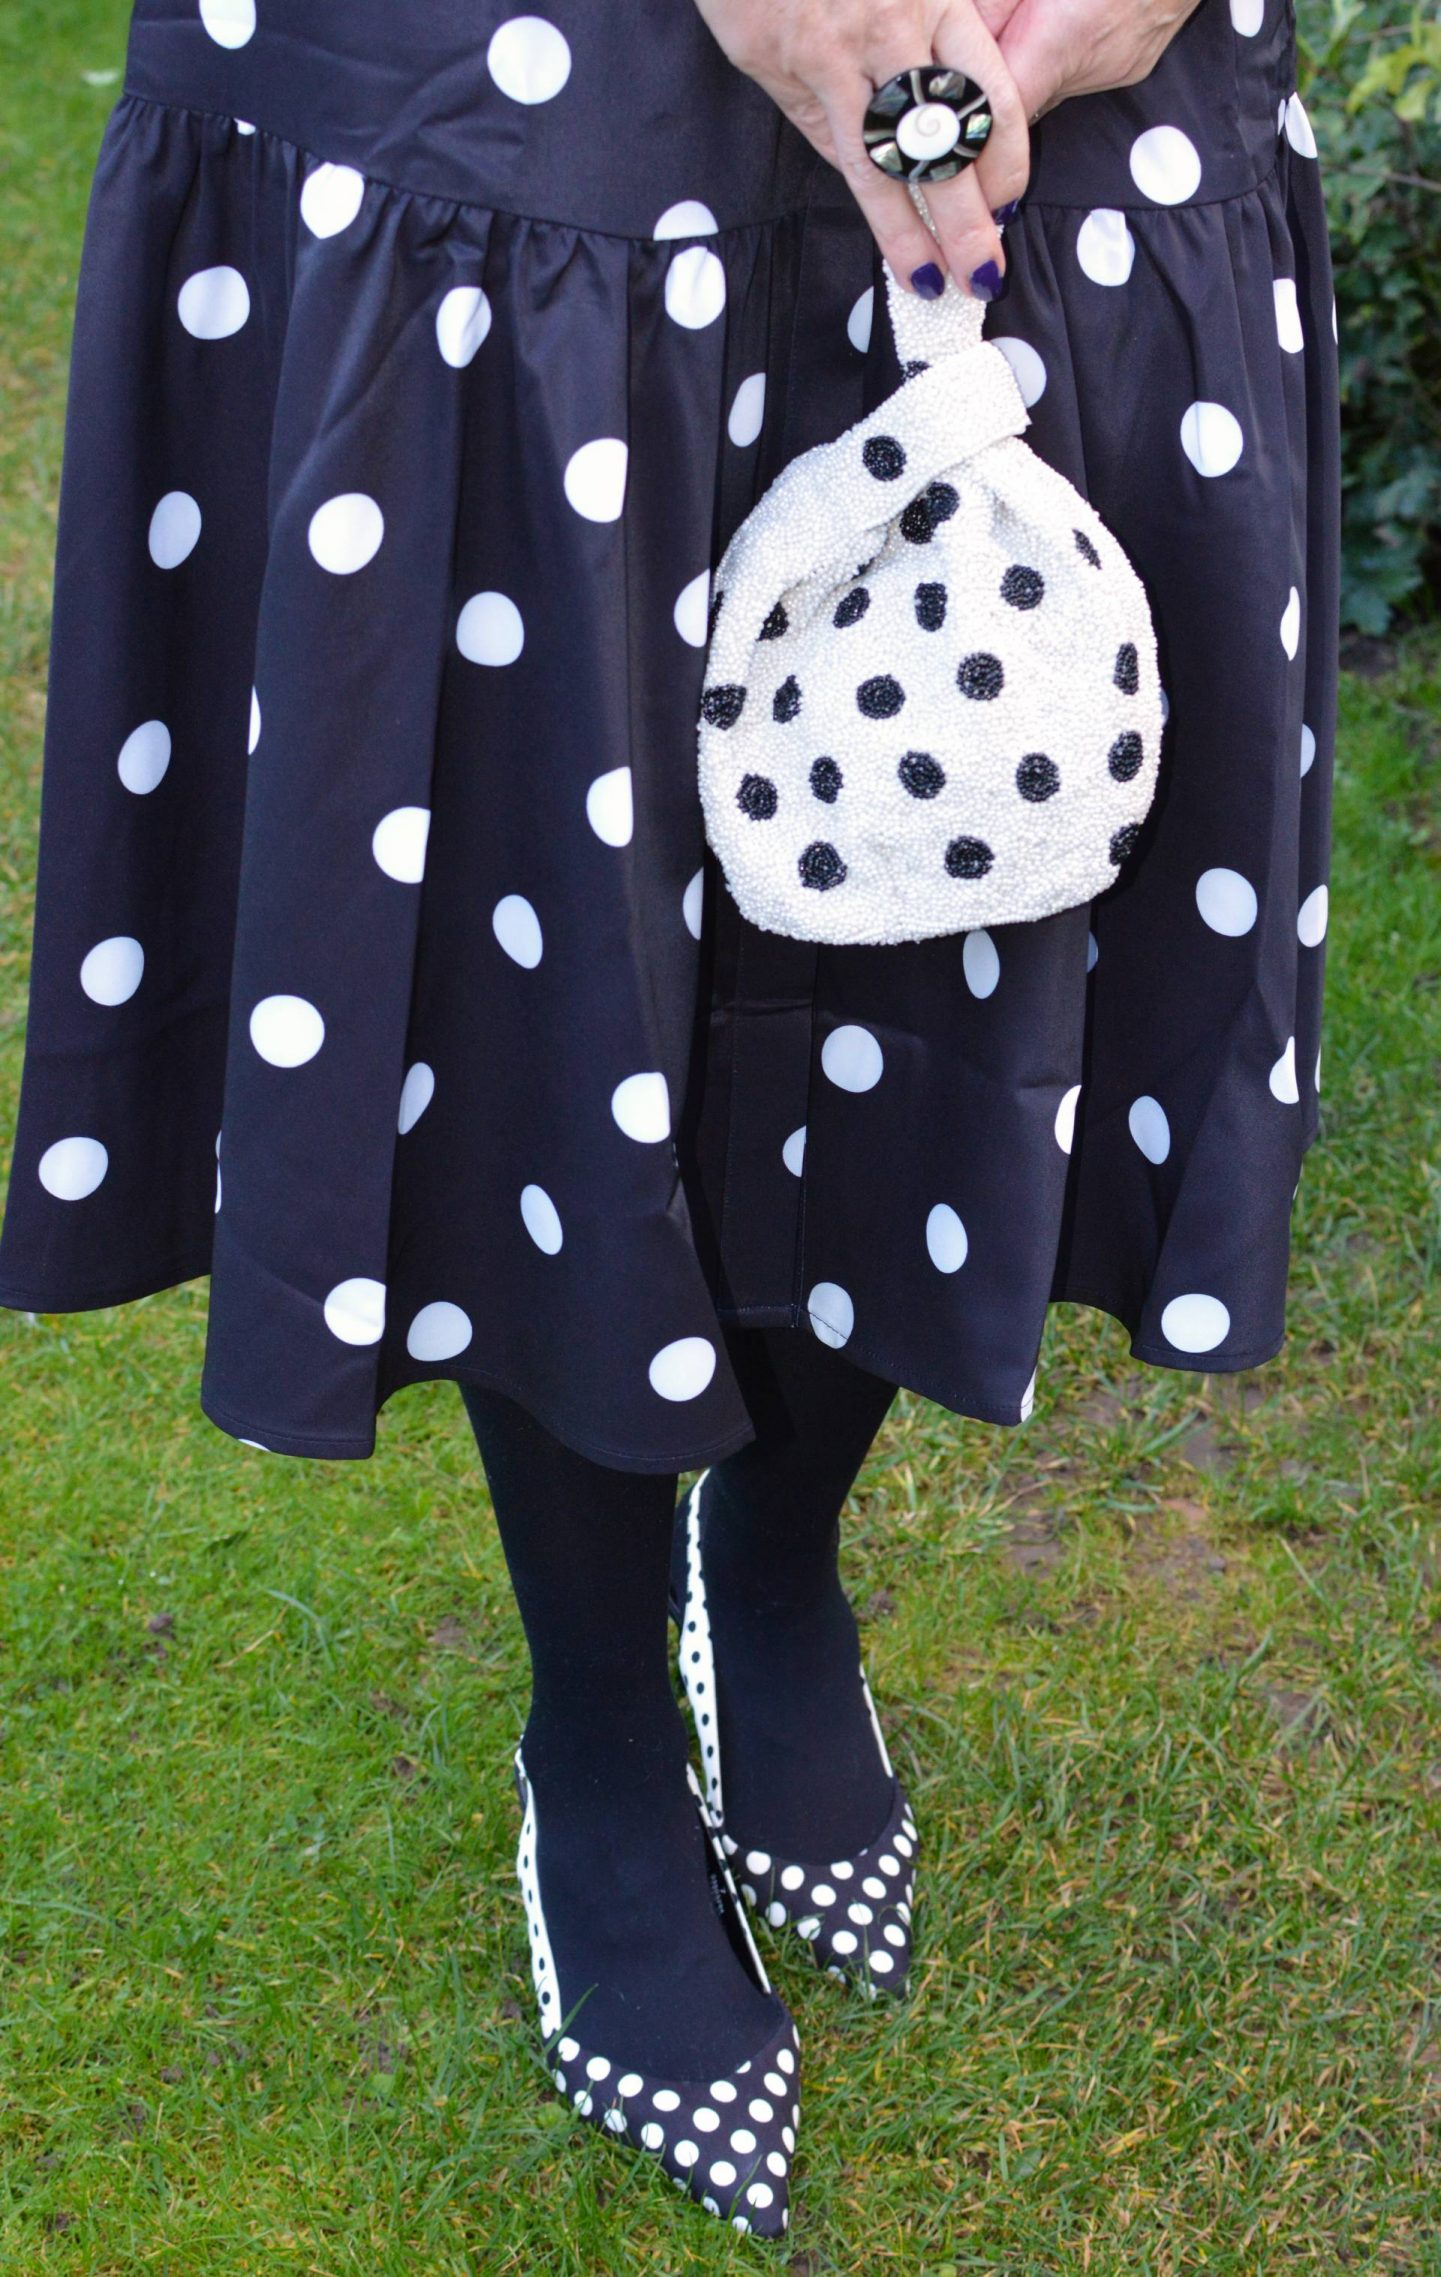 Accessorize beaded polka dot bag, Marks & Spencer polka dot slingback shoes